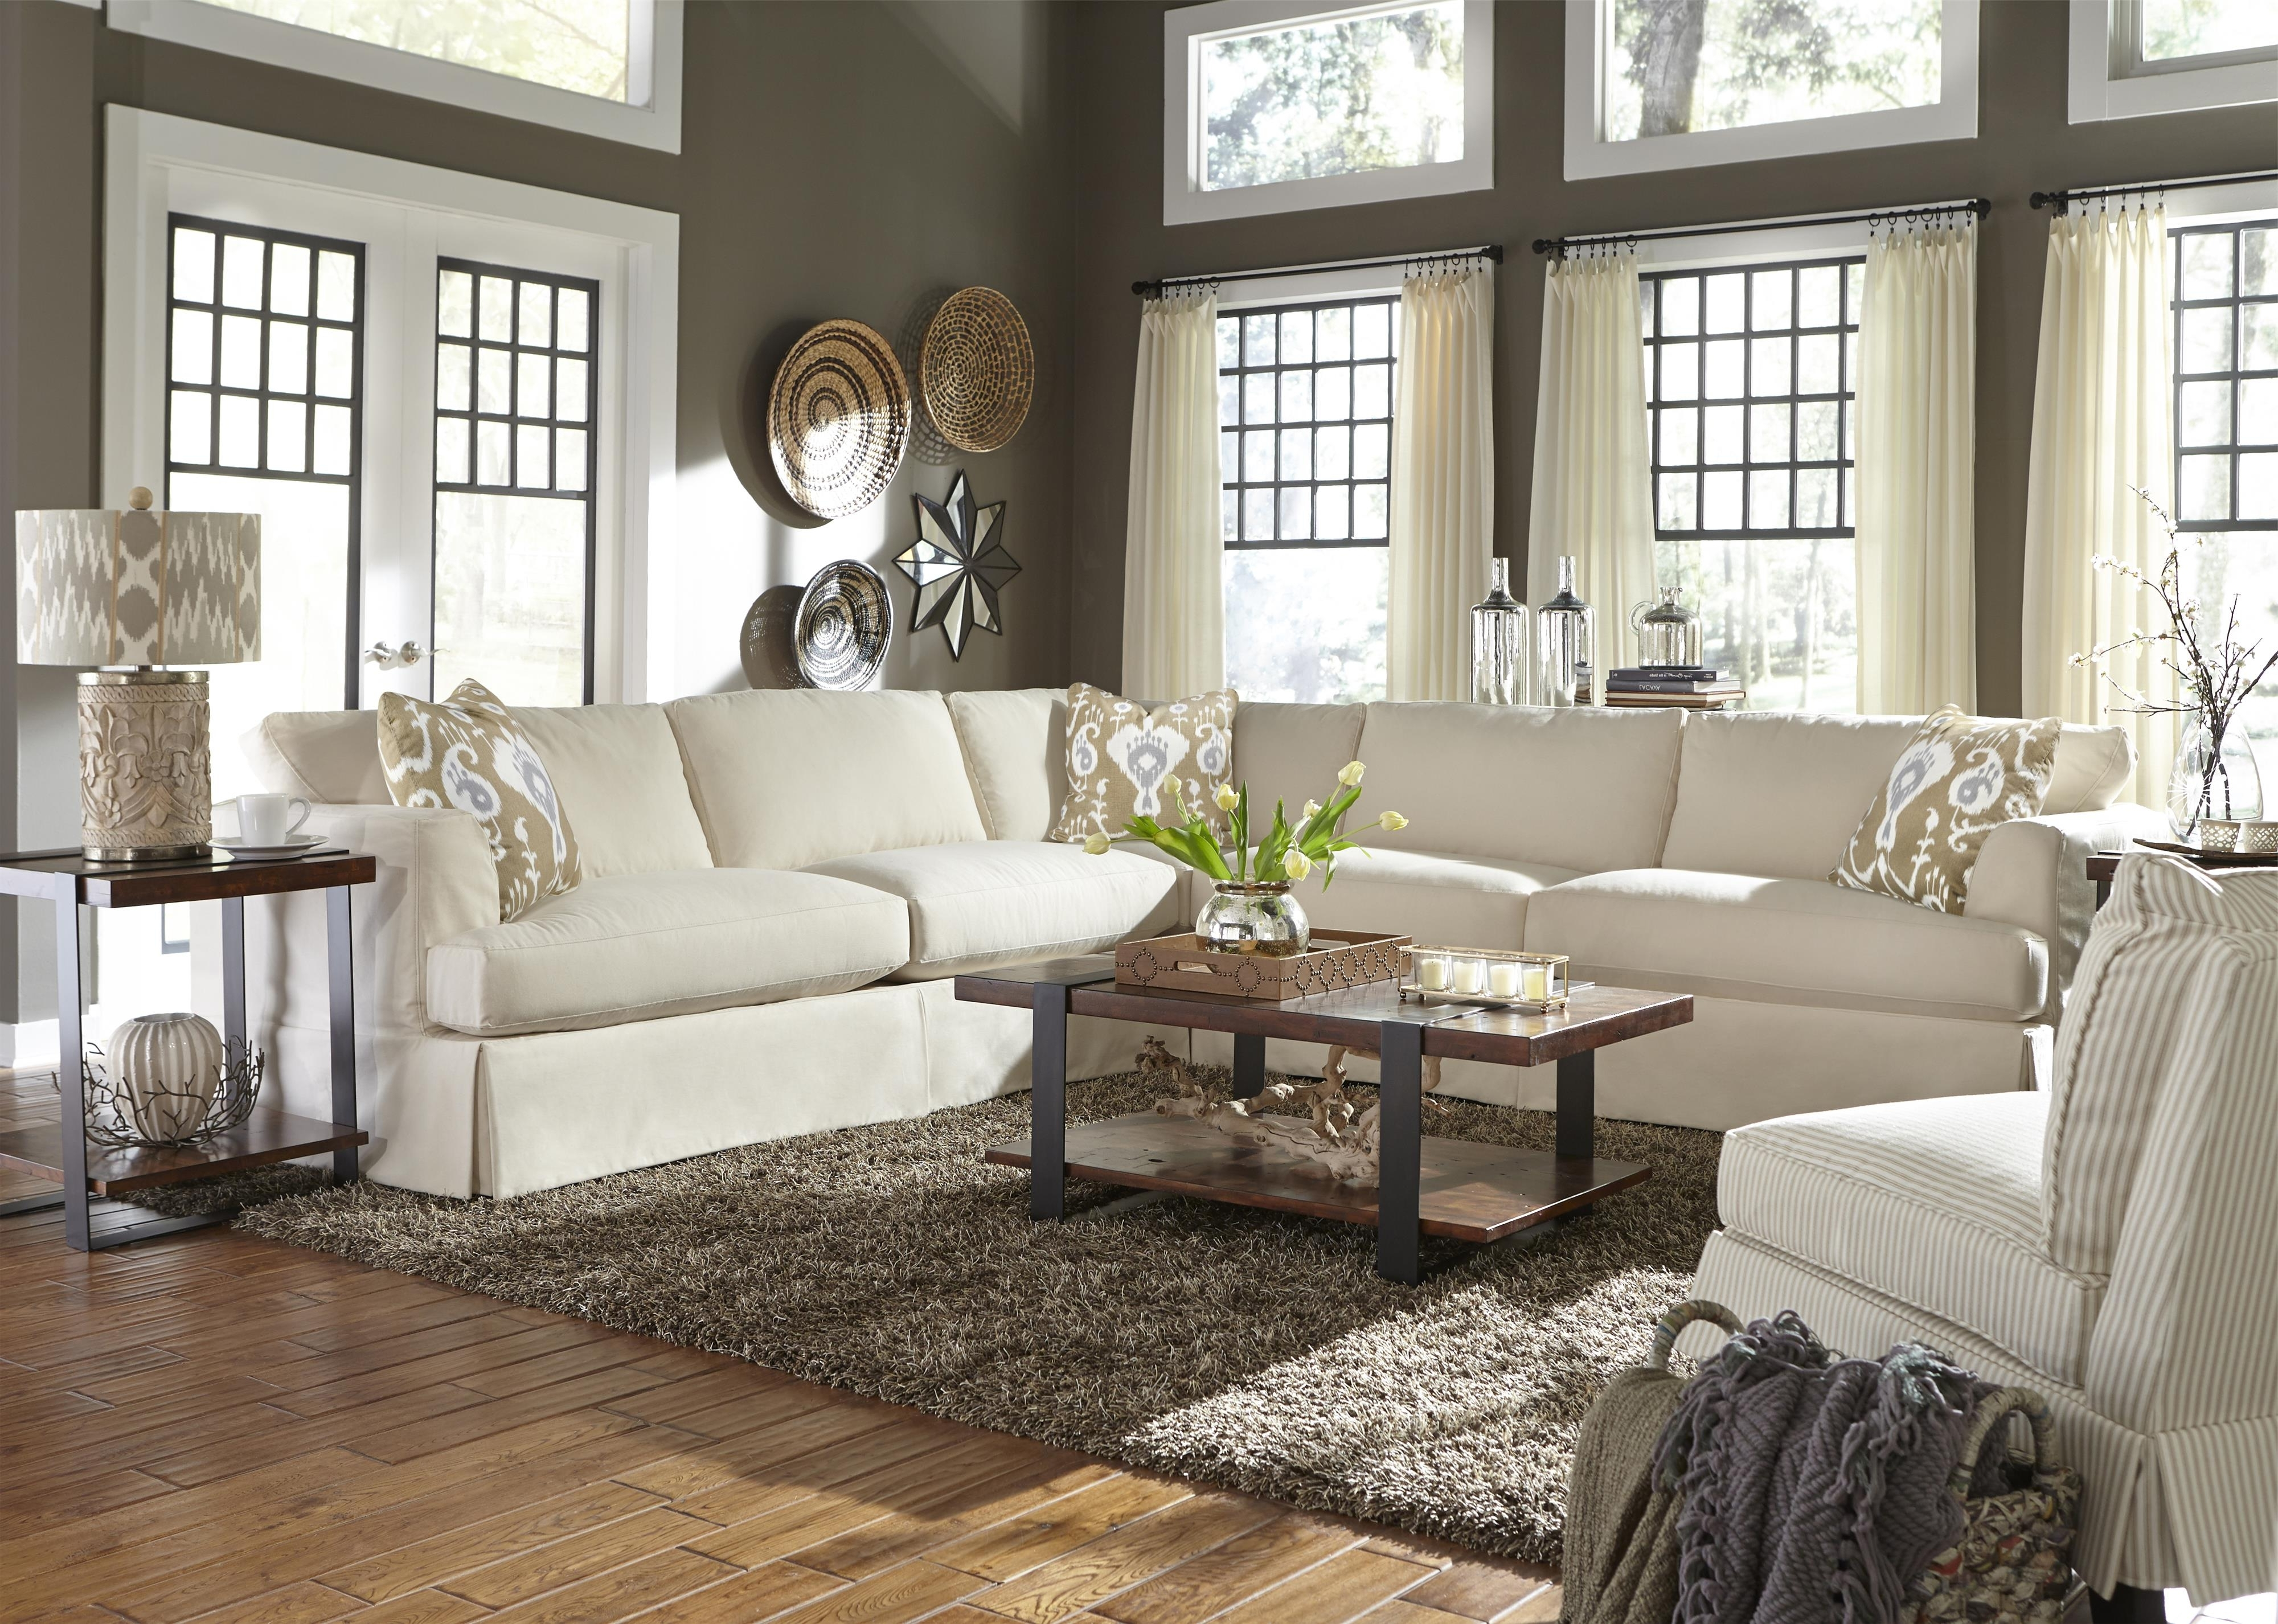 Klaussner Bentley Casual Sectional Sofa With Slip Cover (View 14 of 20)